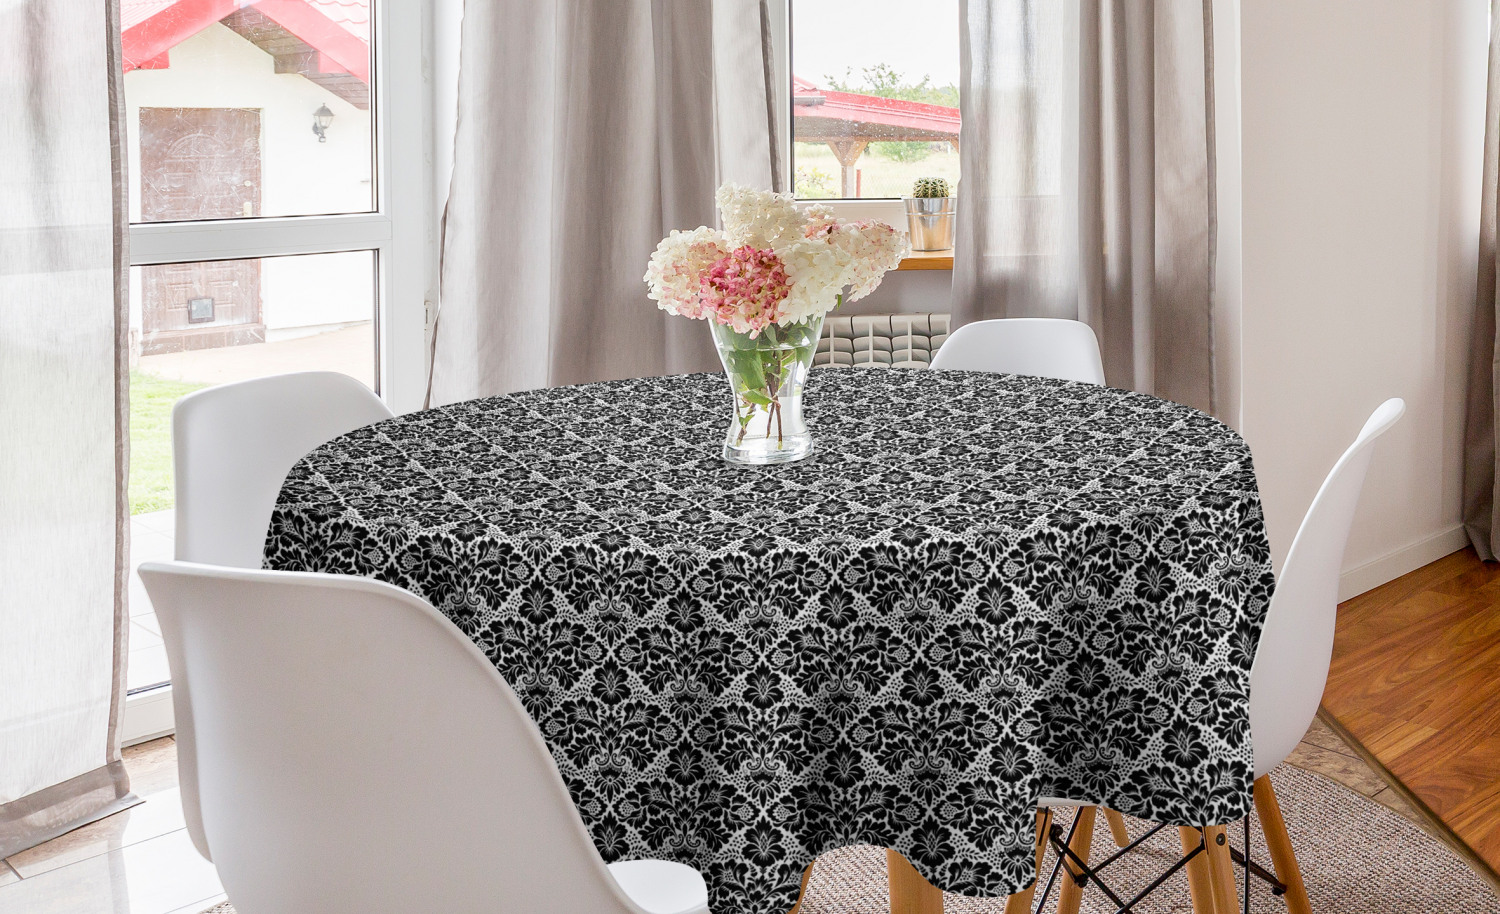 Victorian Round Tablecloth Antique Design With Botanic Plant Details Swirls And Flowers Print Circle Table Cloth Cover For Dining Room Kitchen Decor 60 Black And White By Ambesonne Walmart Com Walmart Com